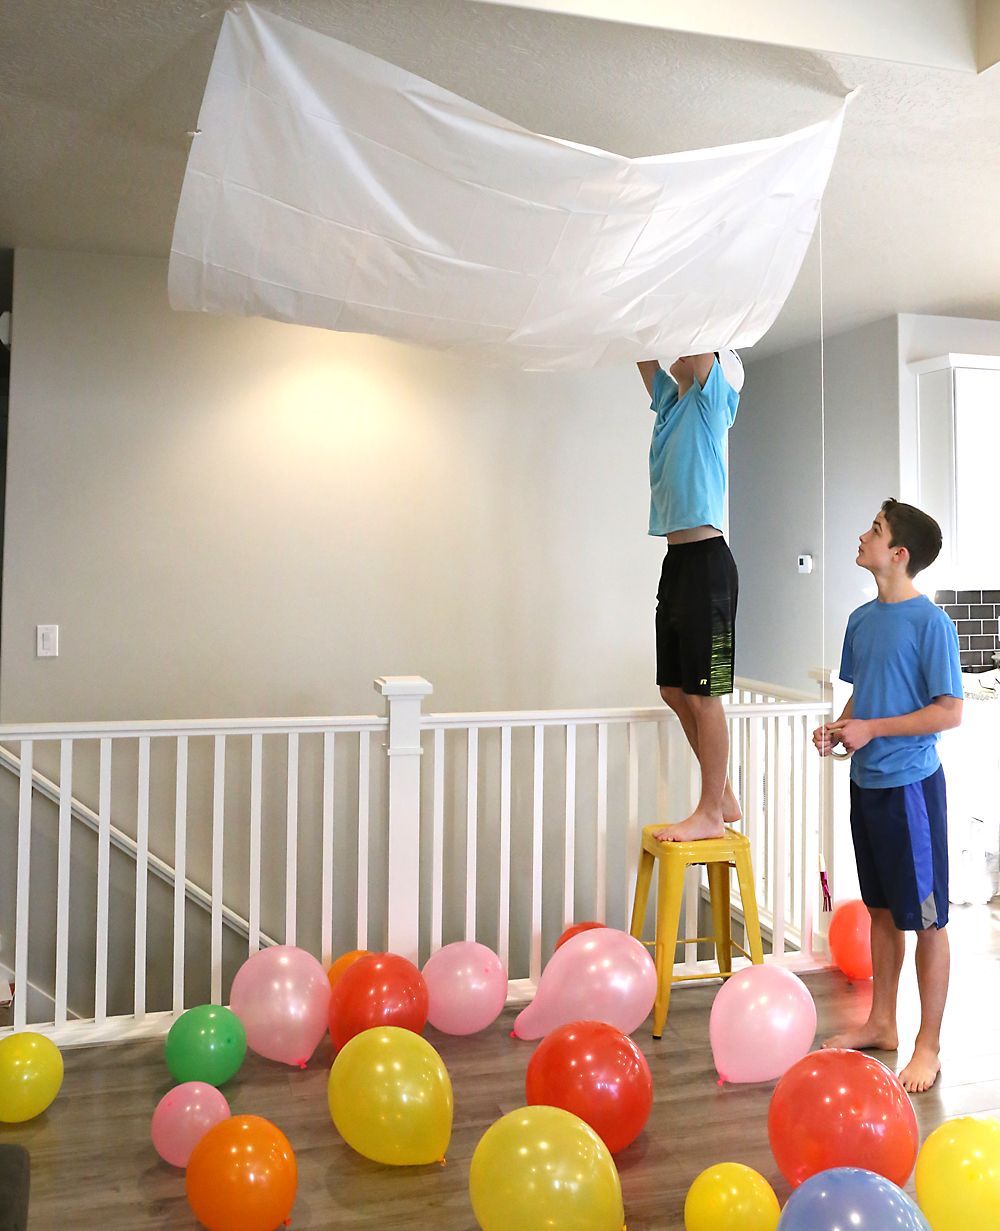 Boys taping a tarp to the ceiling to fill with balloons